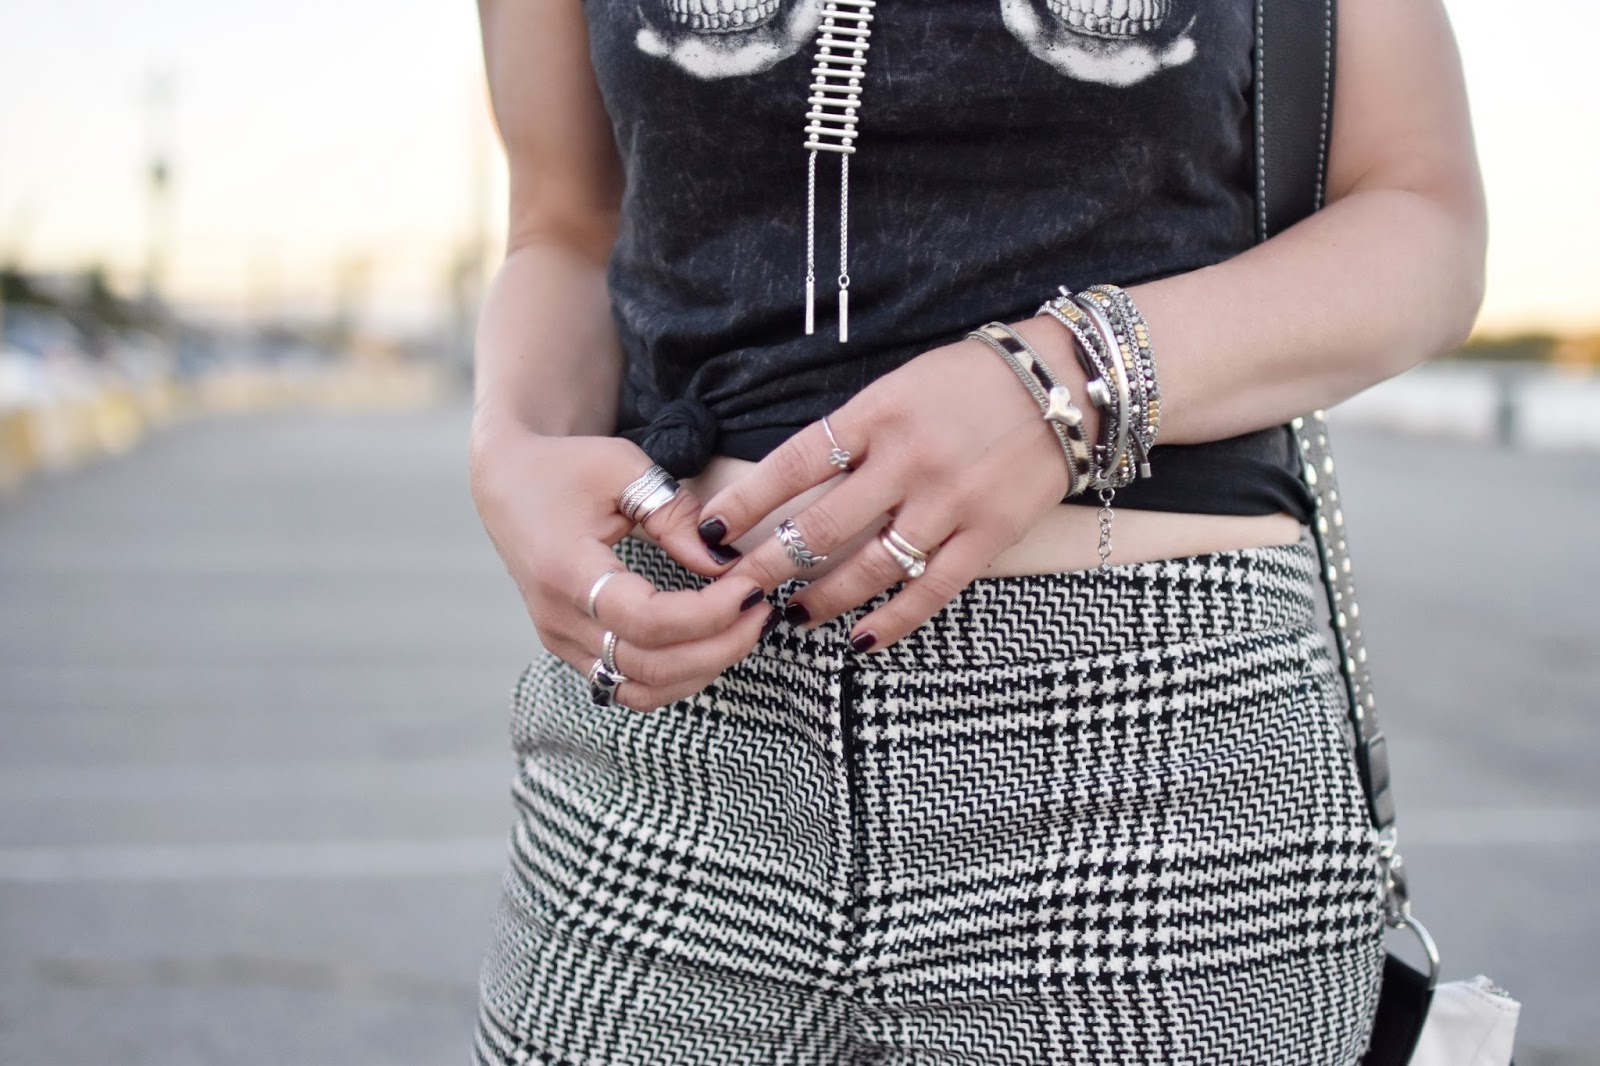 Monika Faulkner outfit inspiration - houndstooth trousers, skull-patterned tee, layered bracelets